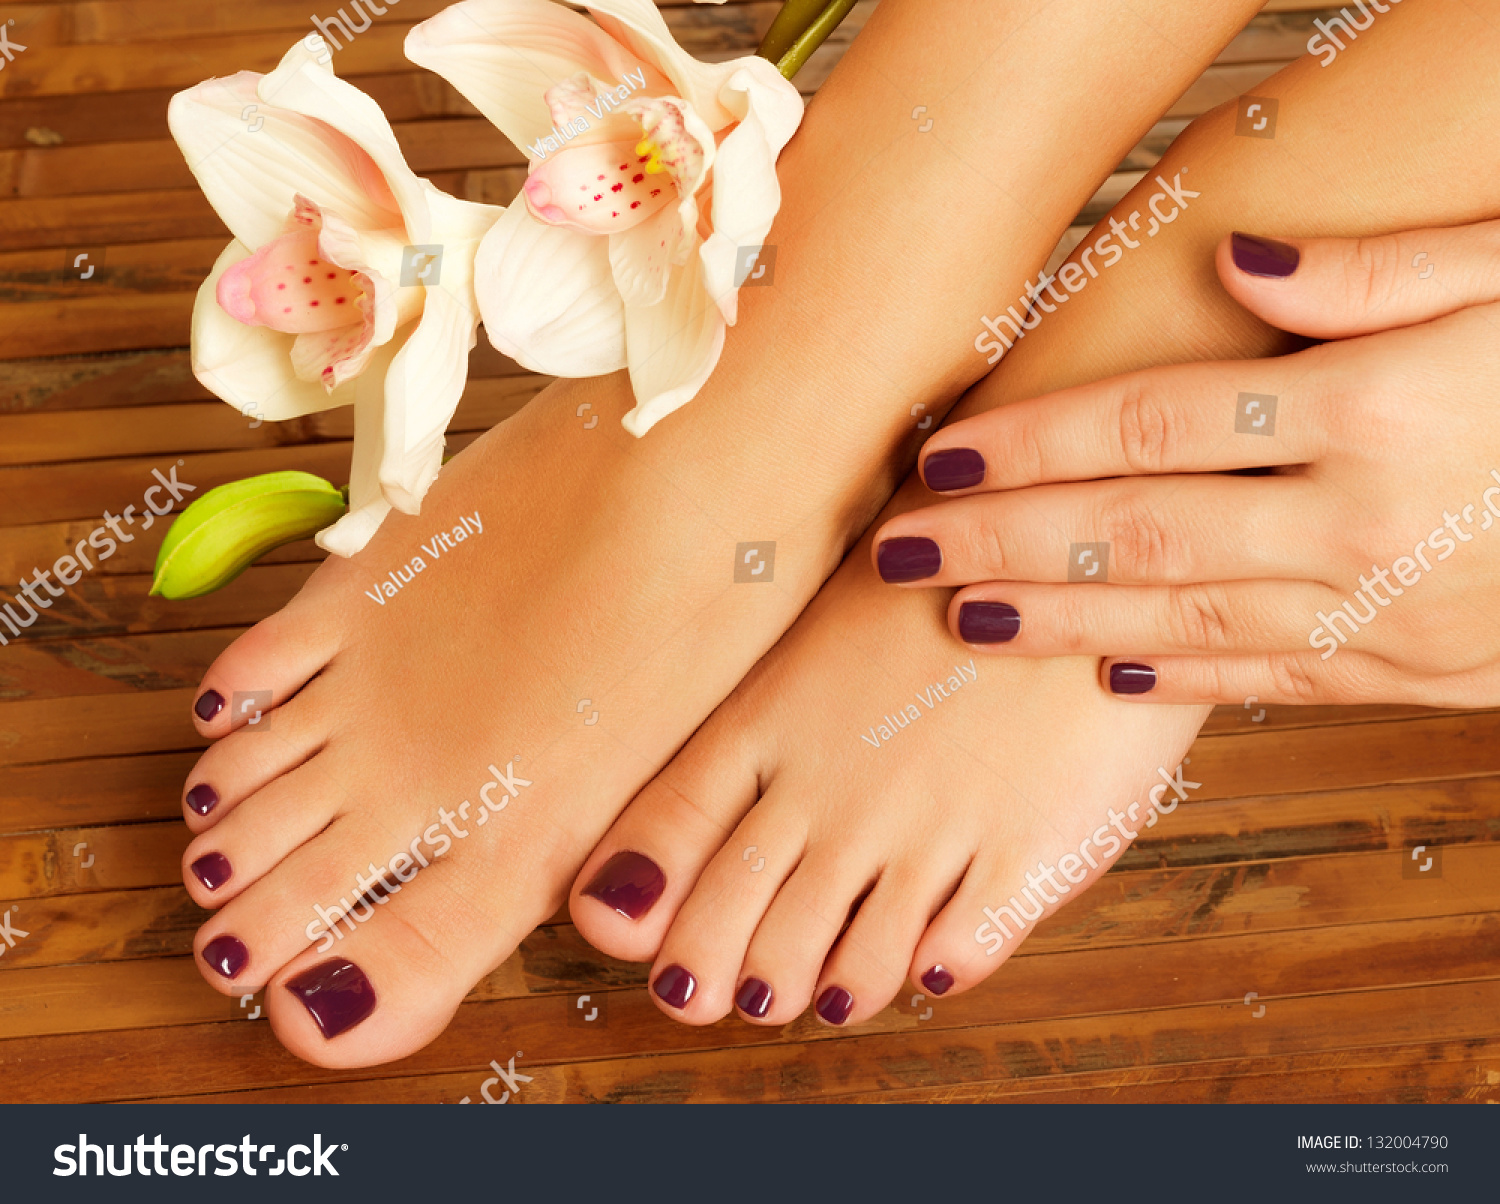 Massage and pedicure